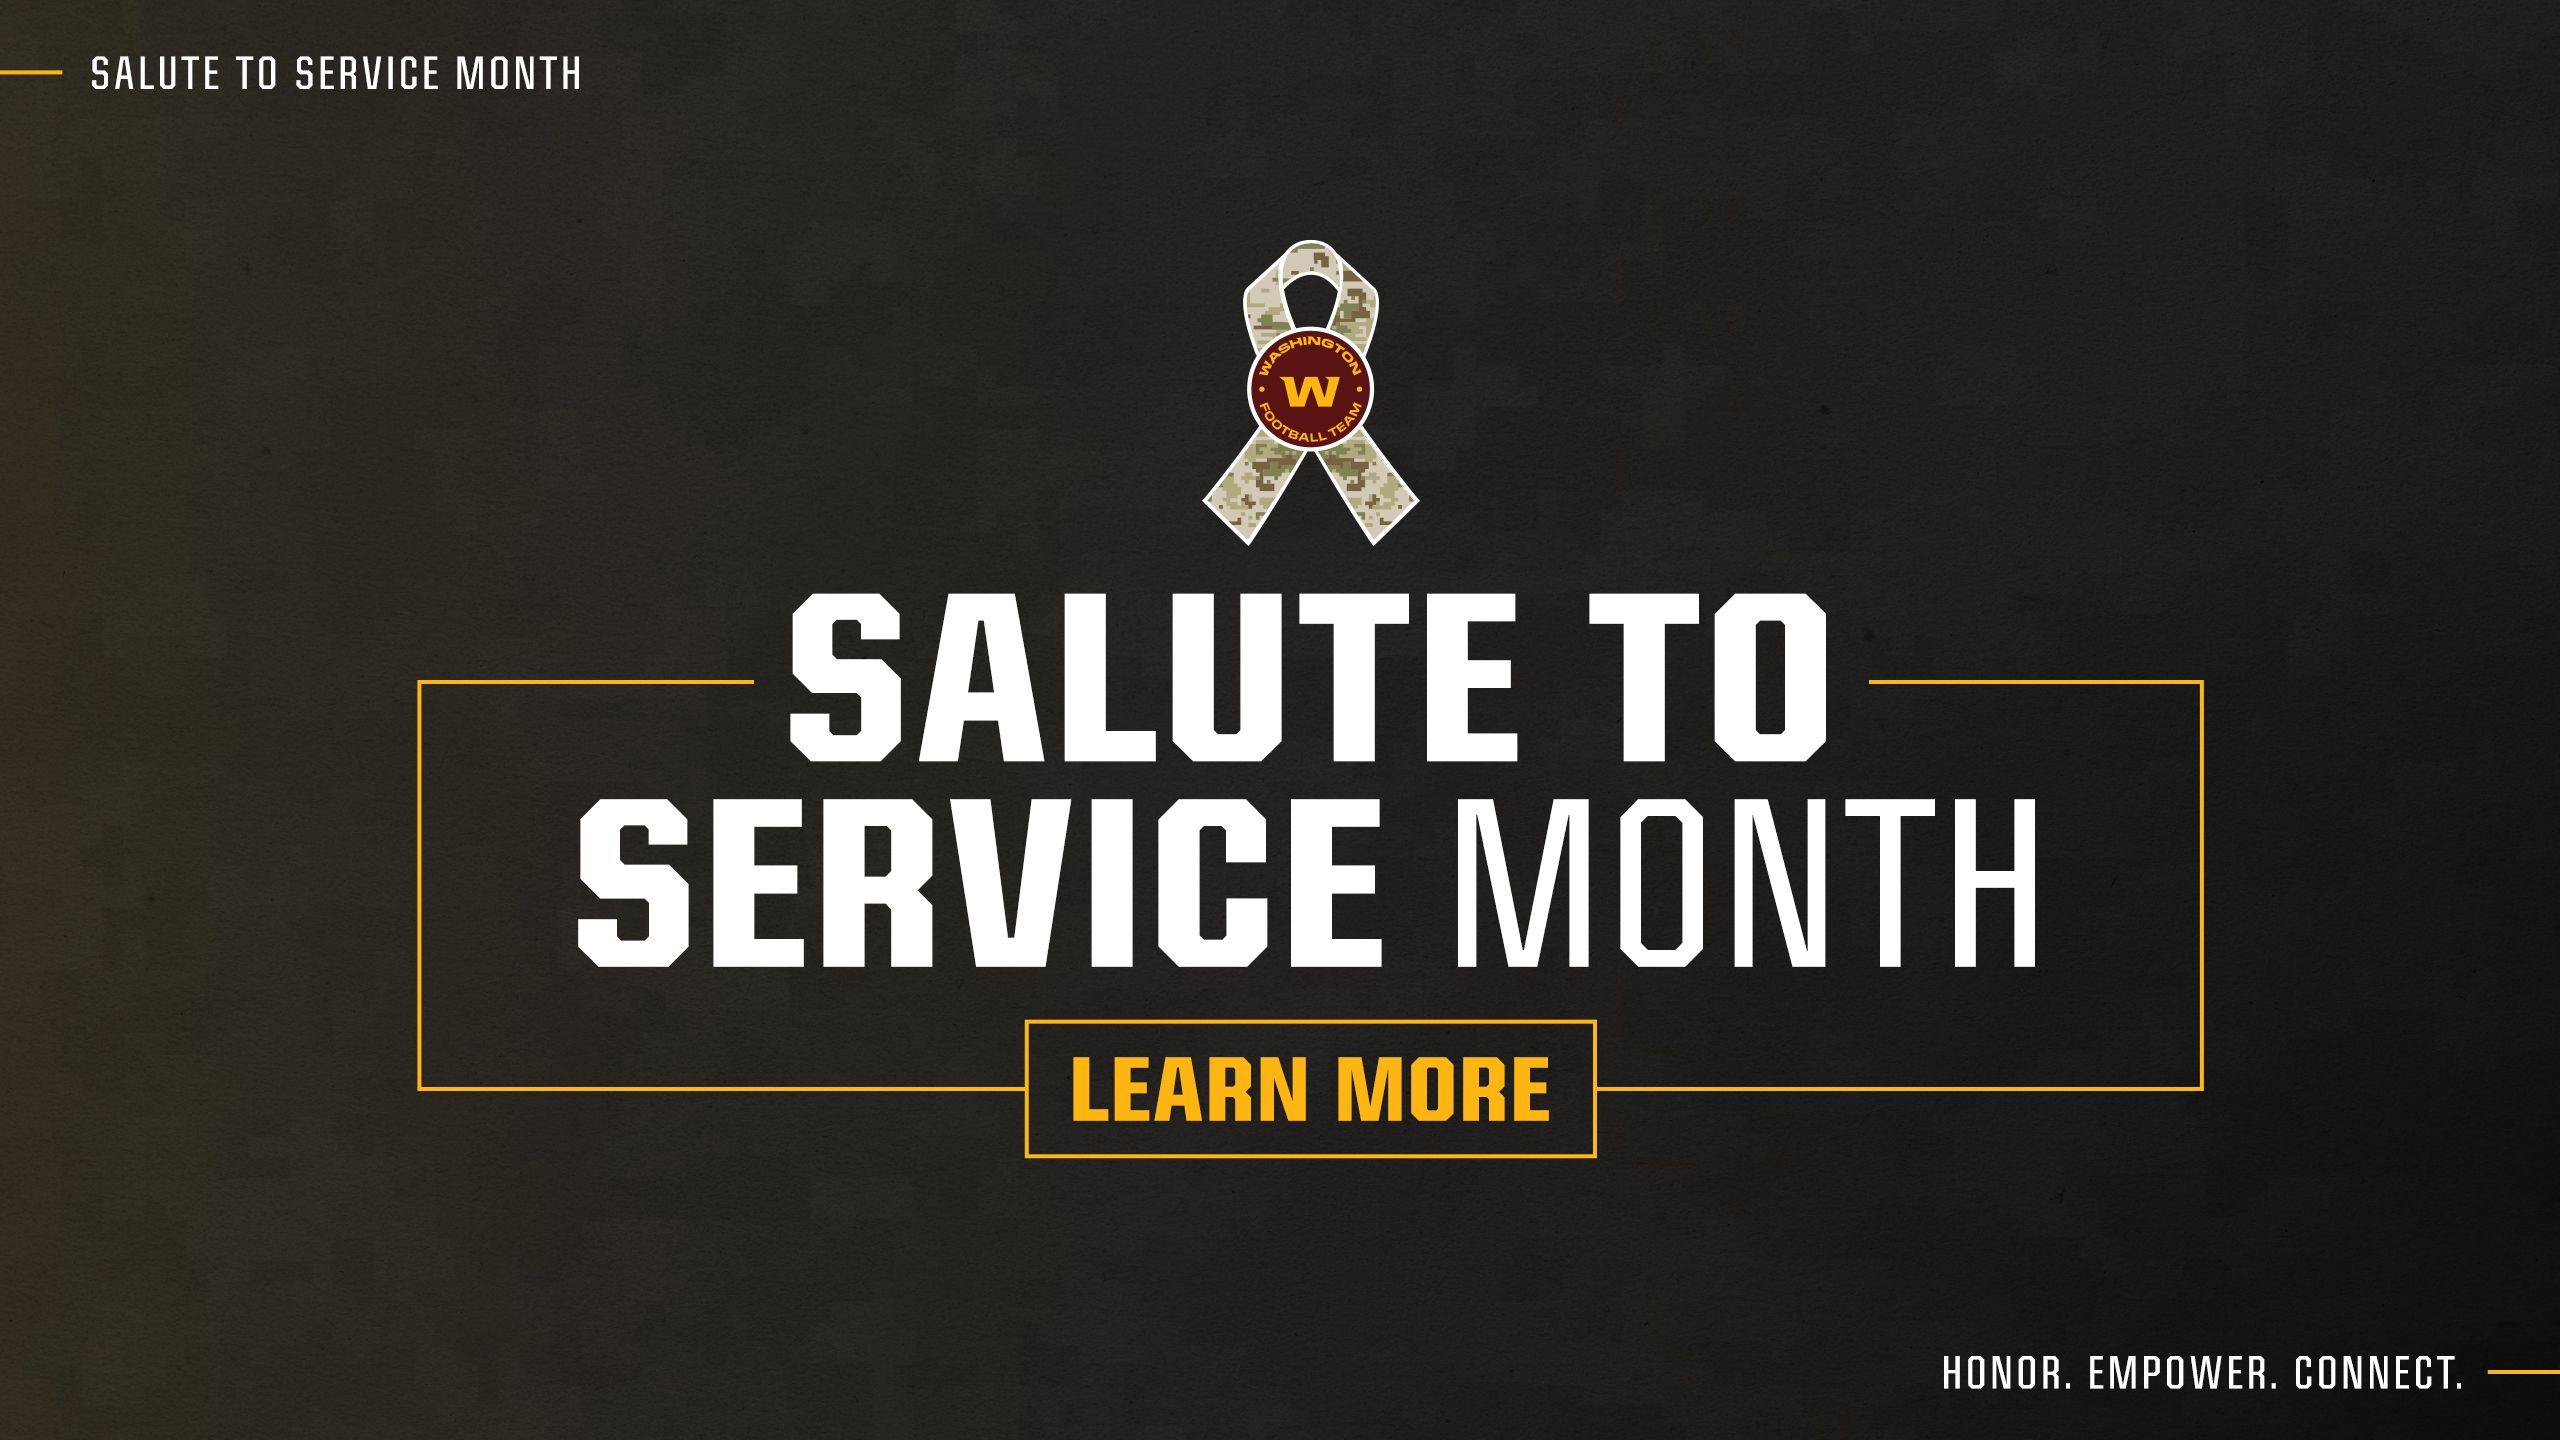 Salute To Service Month